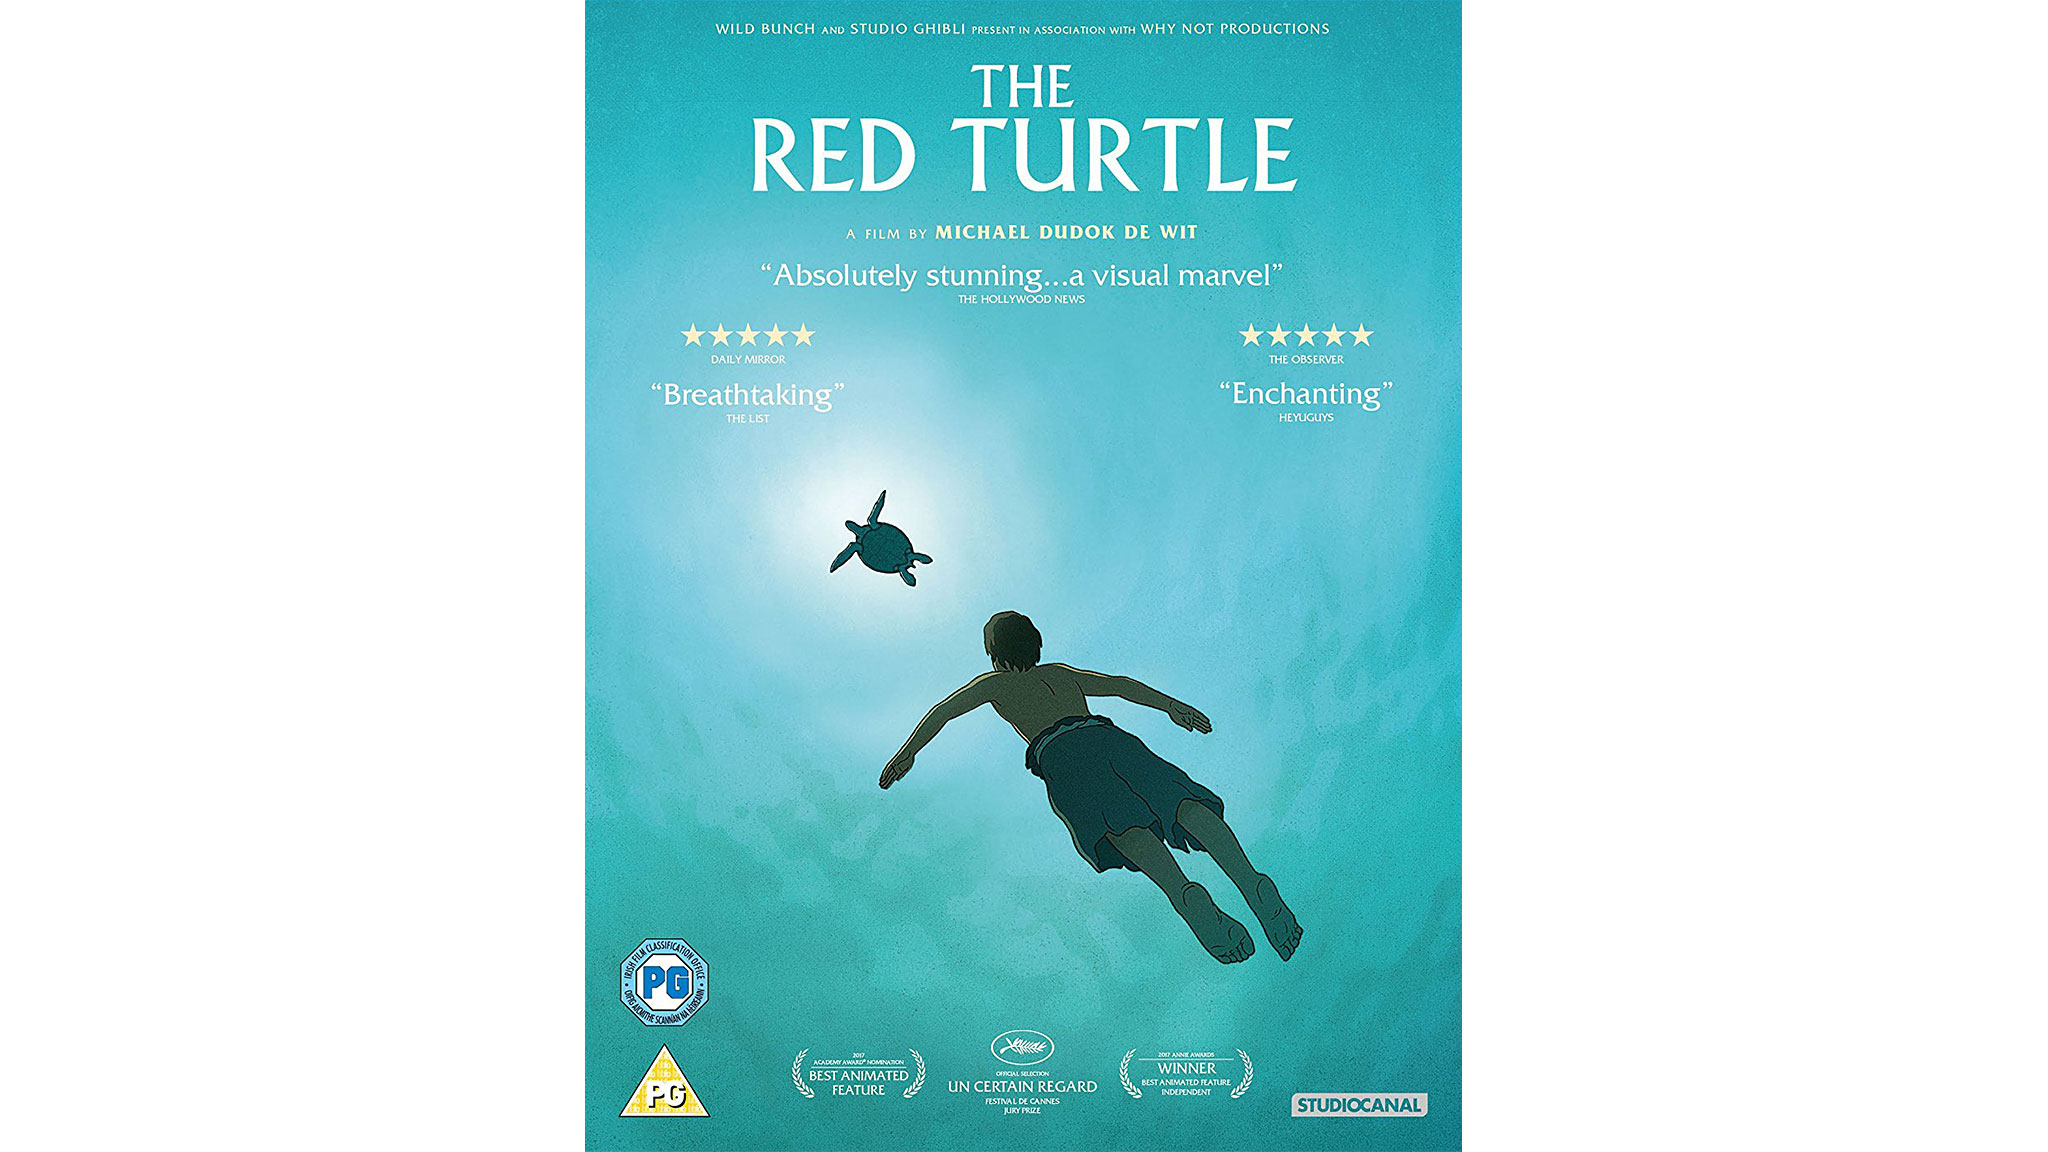 Download The Red Turtle Eco Allegory Financial Times